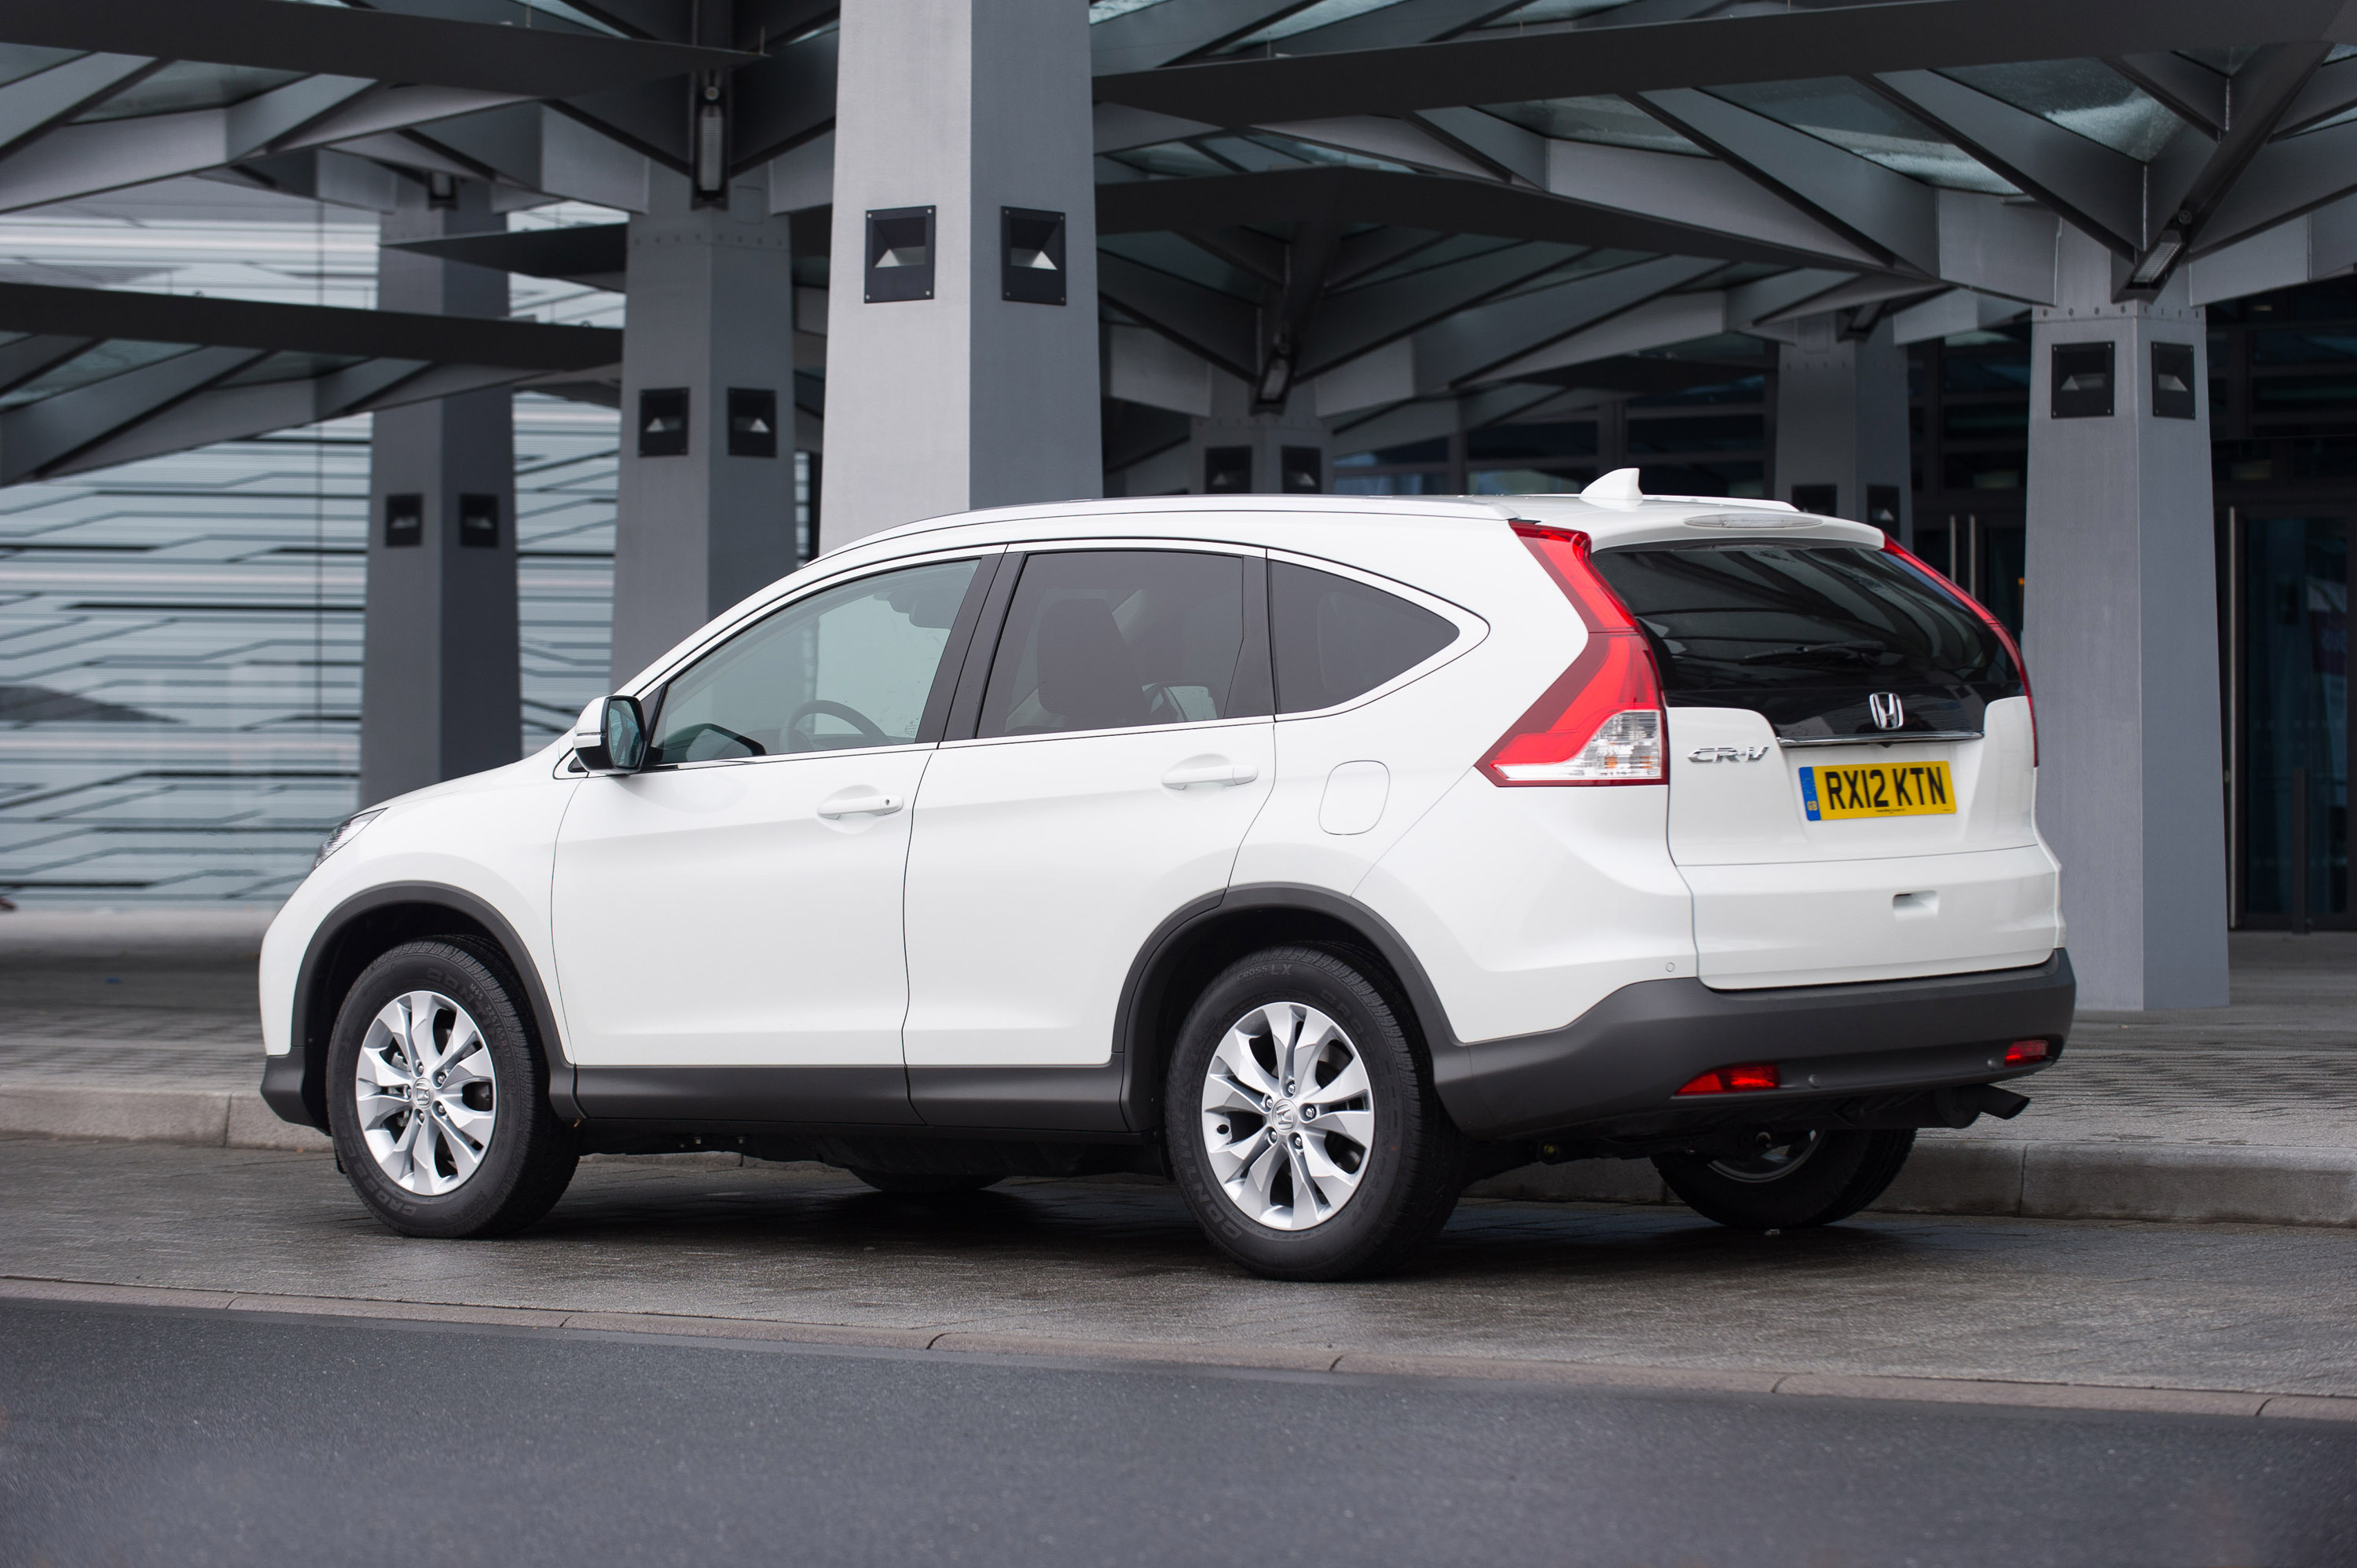 Honda Cr V Euro Ncap Crash Test on 2013 Honda Cr V 1 6 Diesel Engine